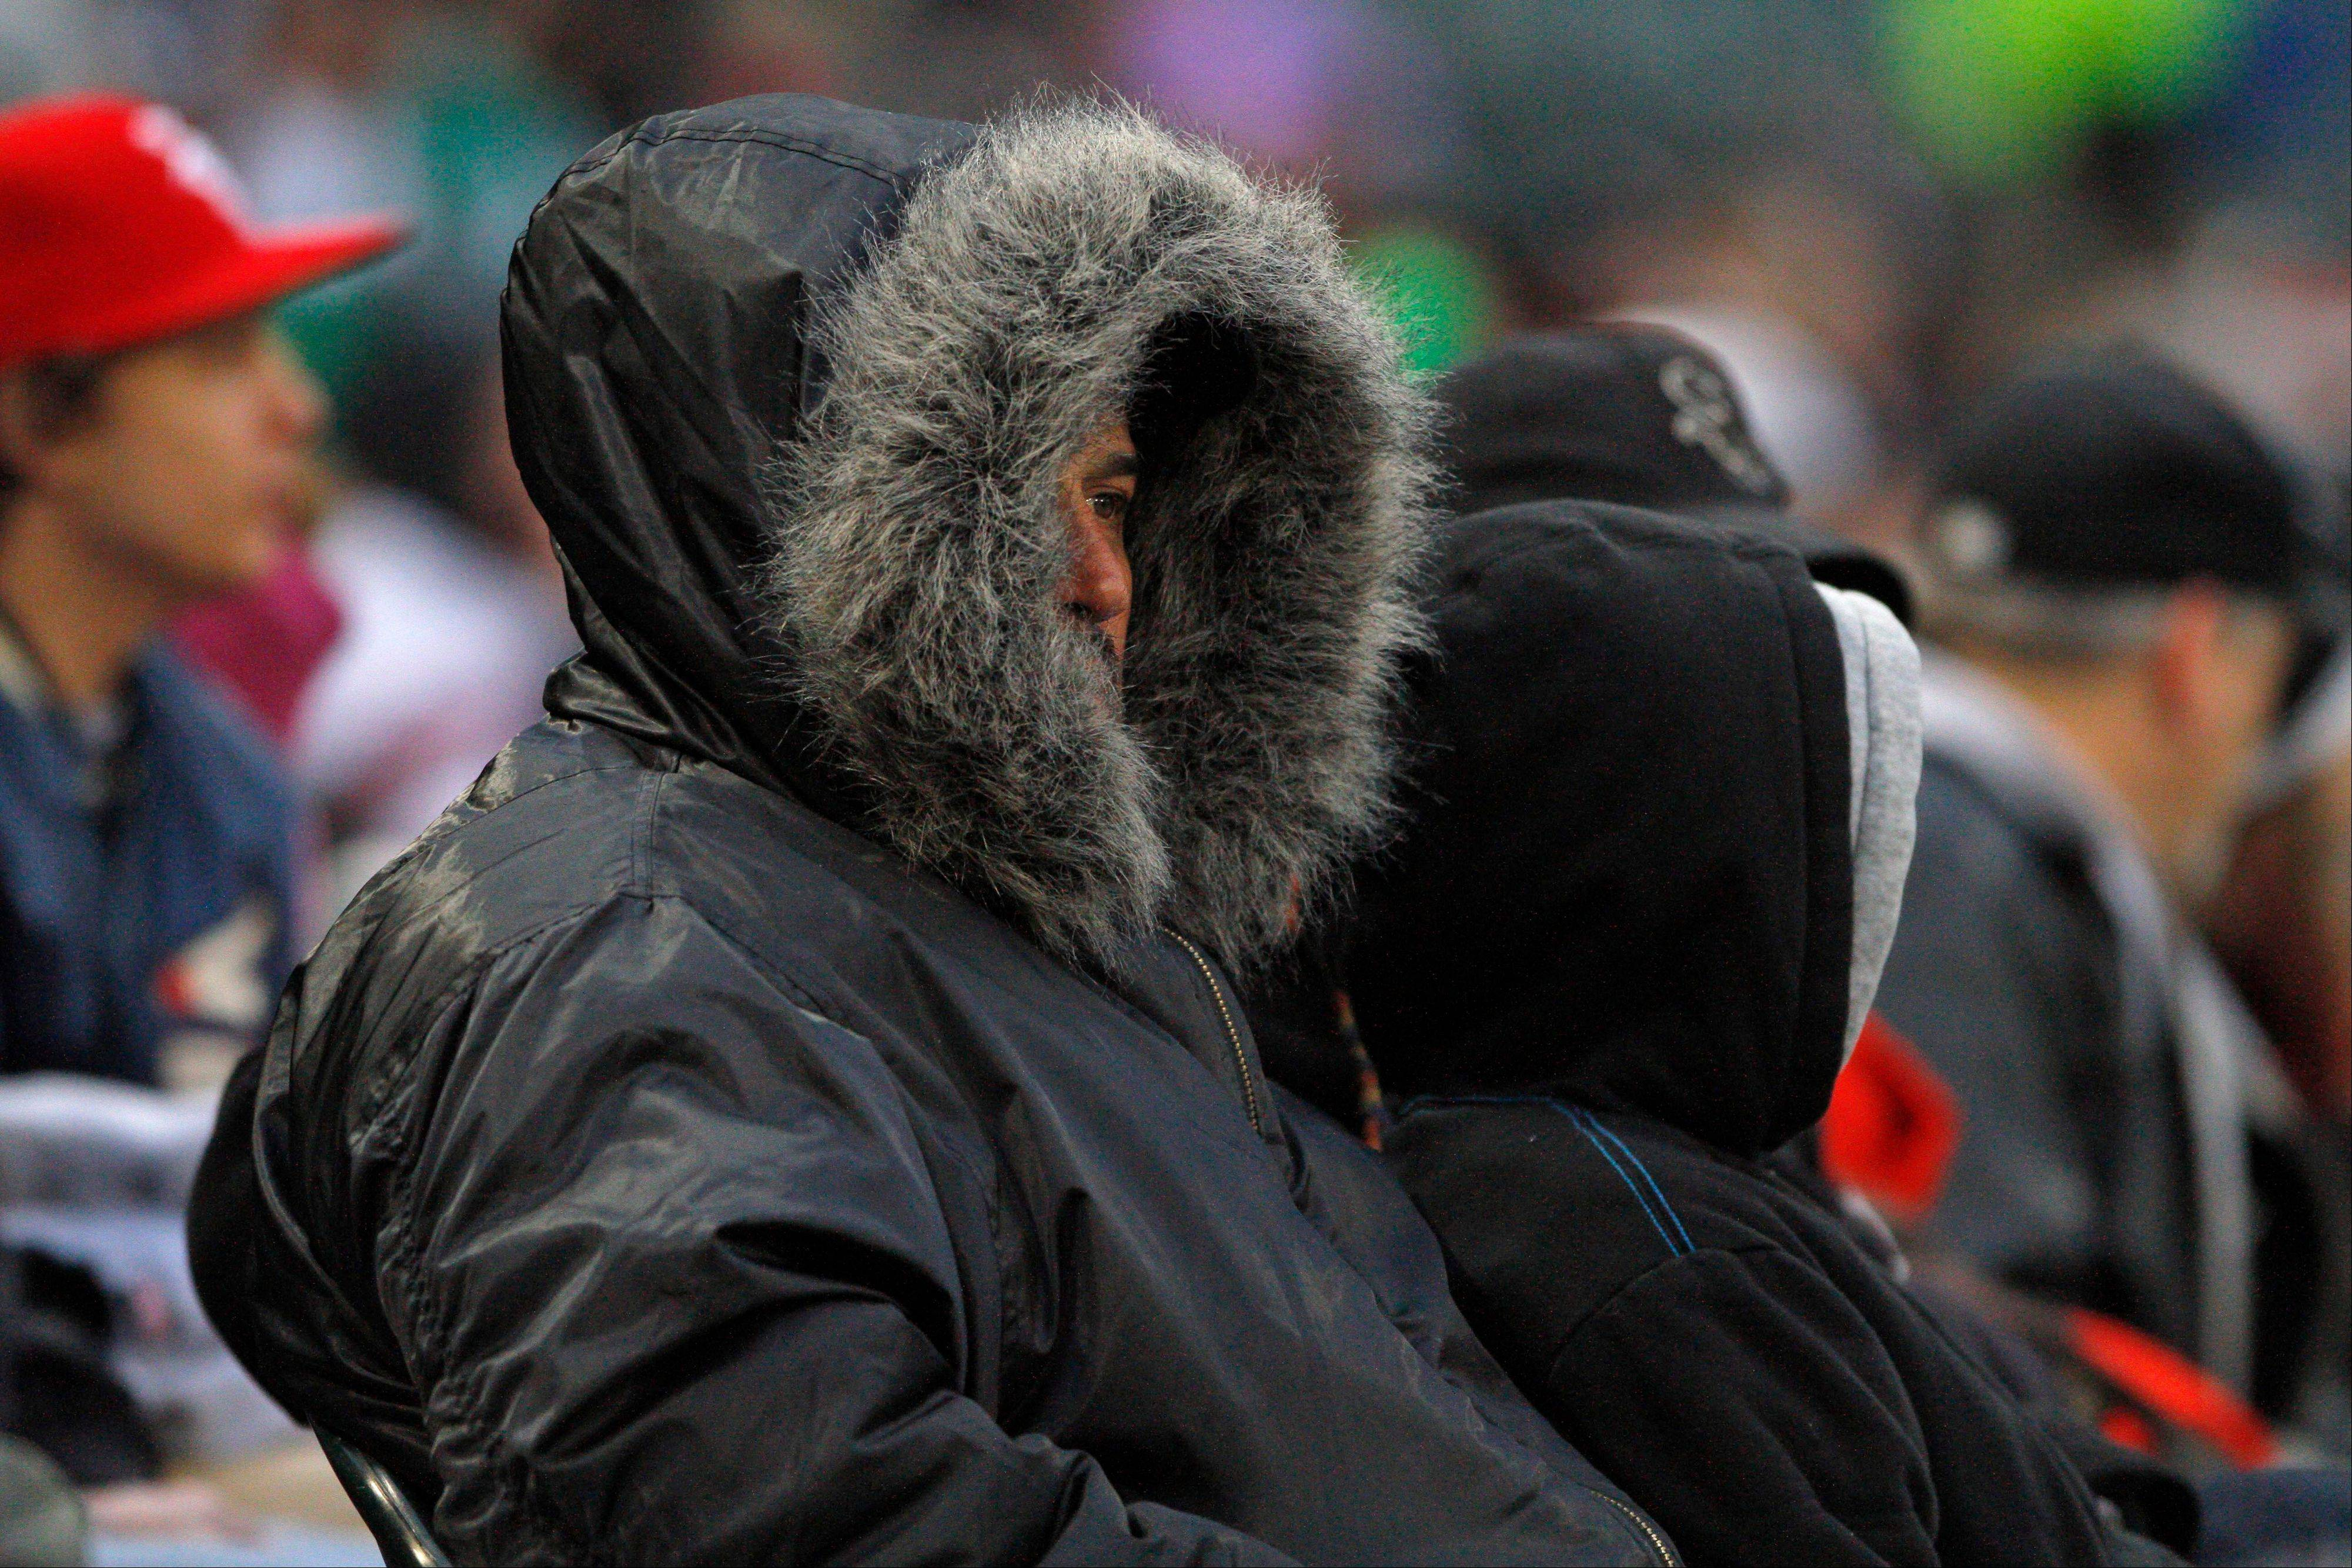 Baseball fans have had to bundle up at U.S. Cellular Field this season. When the White played the Los Angeles Angels last Friday, the temperature dipped below 40 degrees during the game.